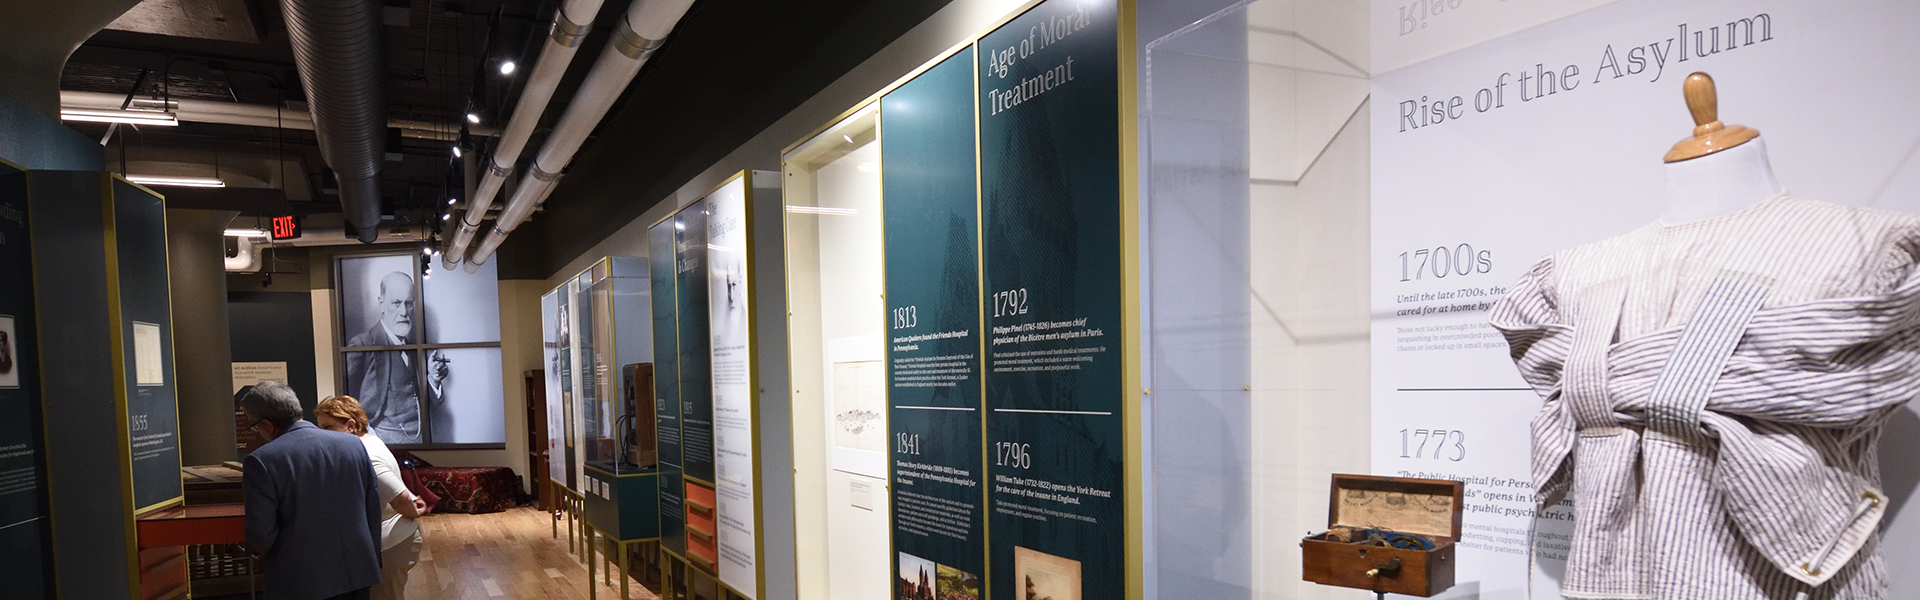 An exhibit at The National Museum of Psychology at The University of Akron